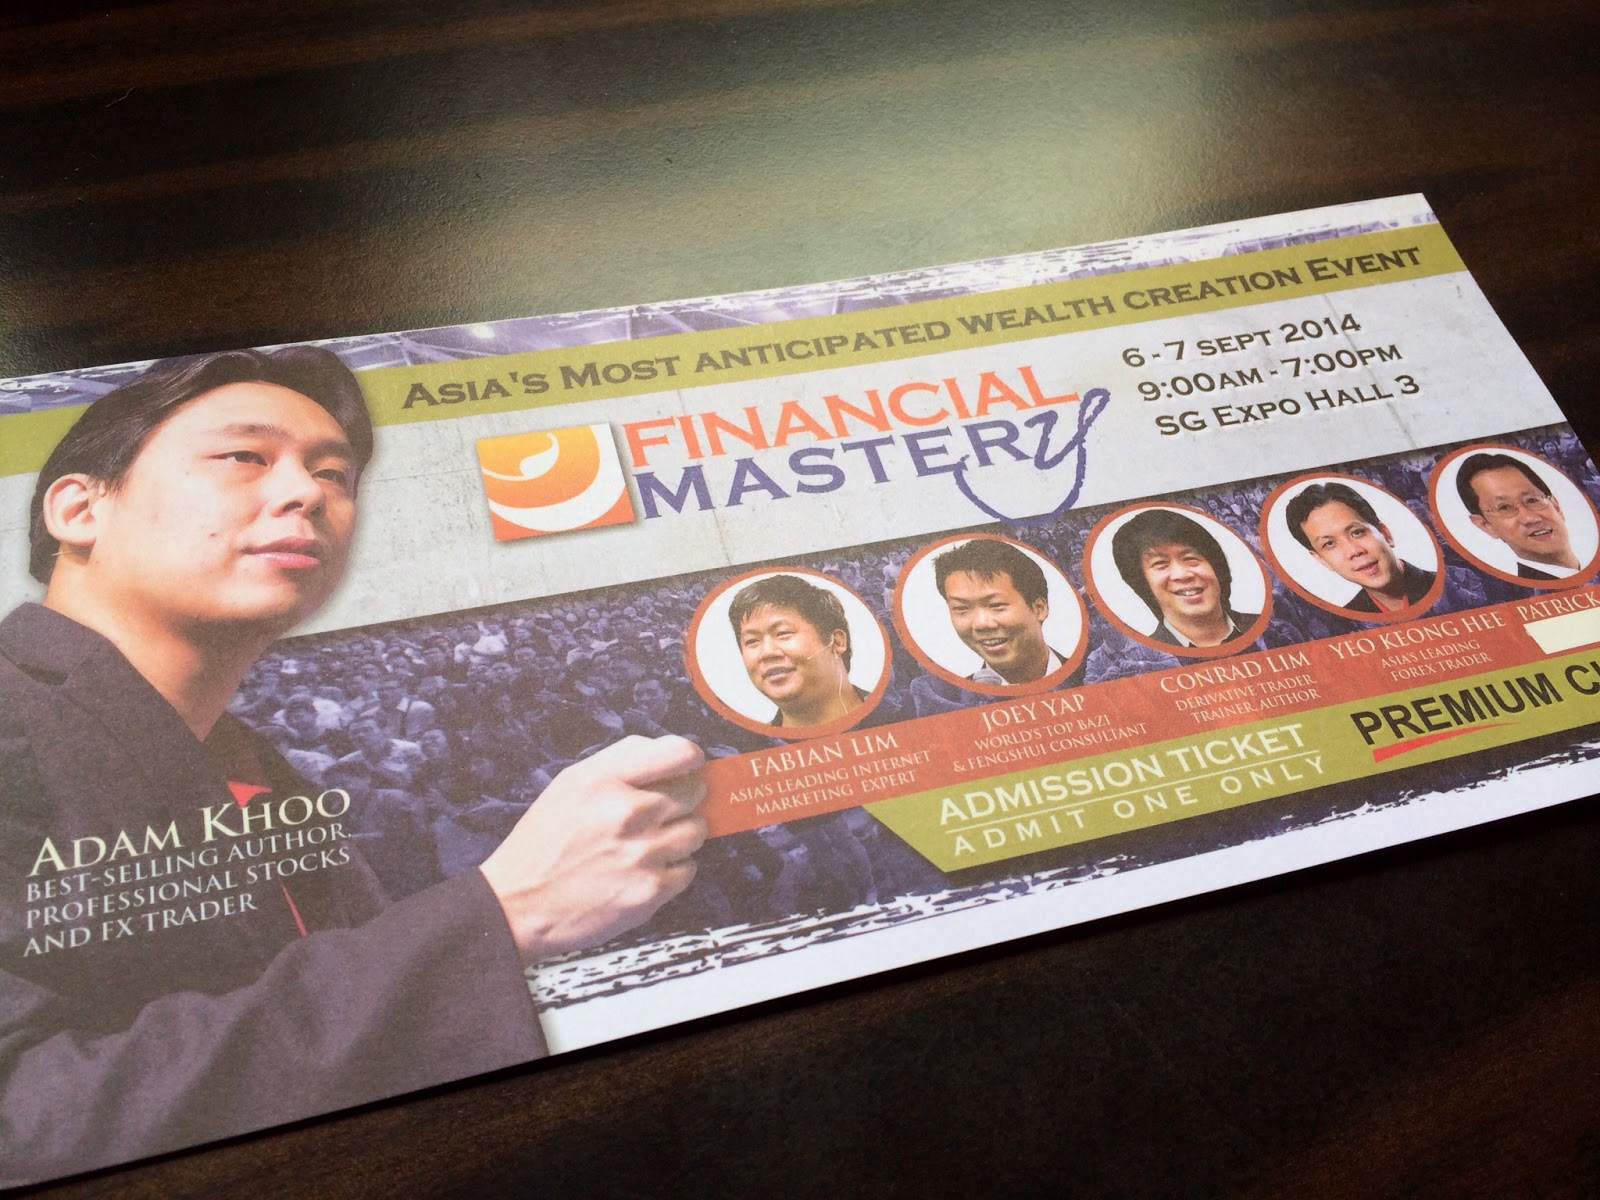 Financial Mastery 2014 Ticket